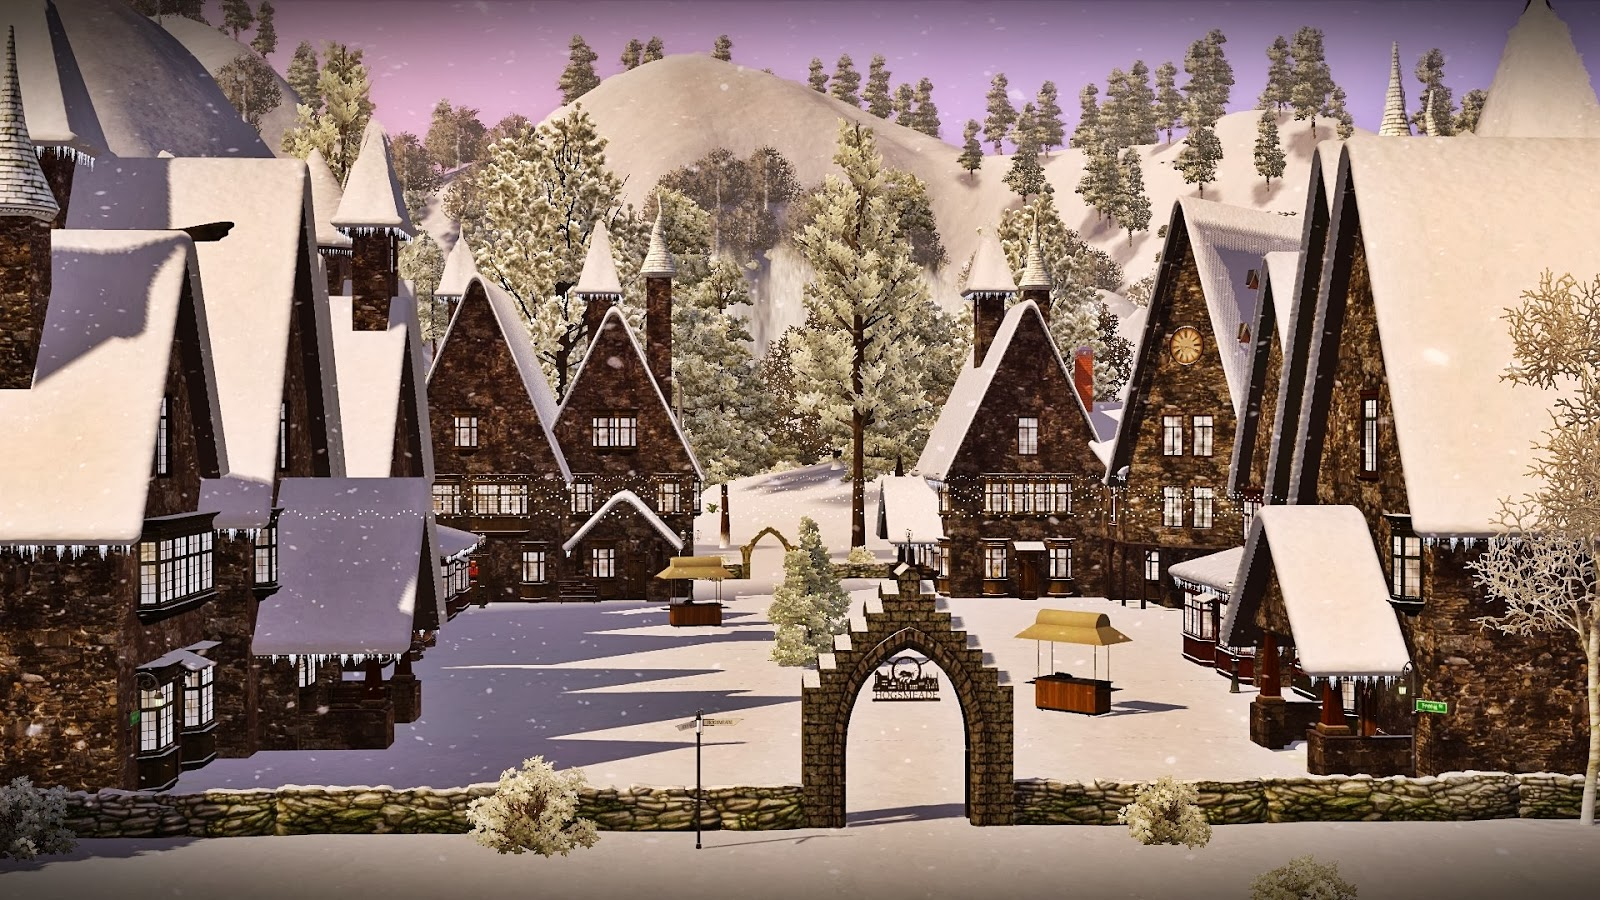 Hogsmeade - Resort by Frau Engel